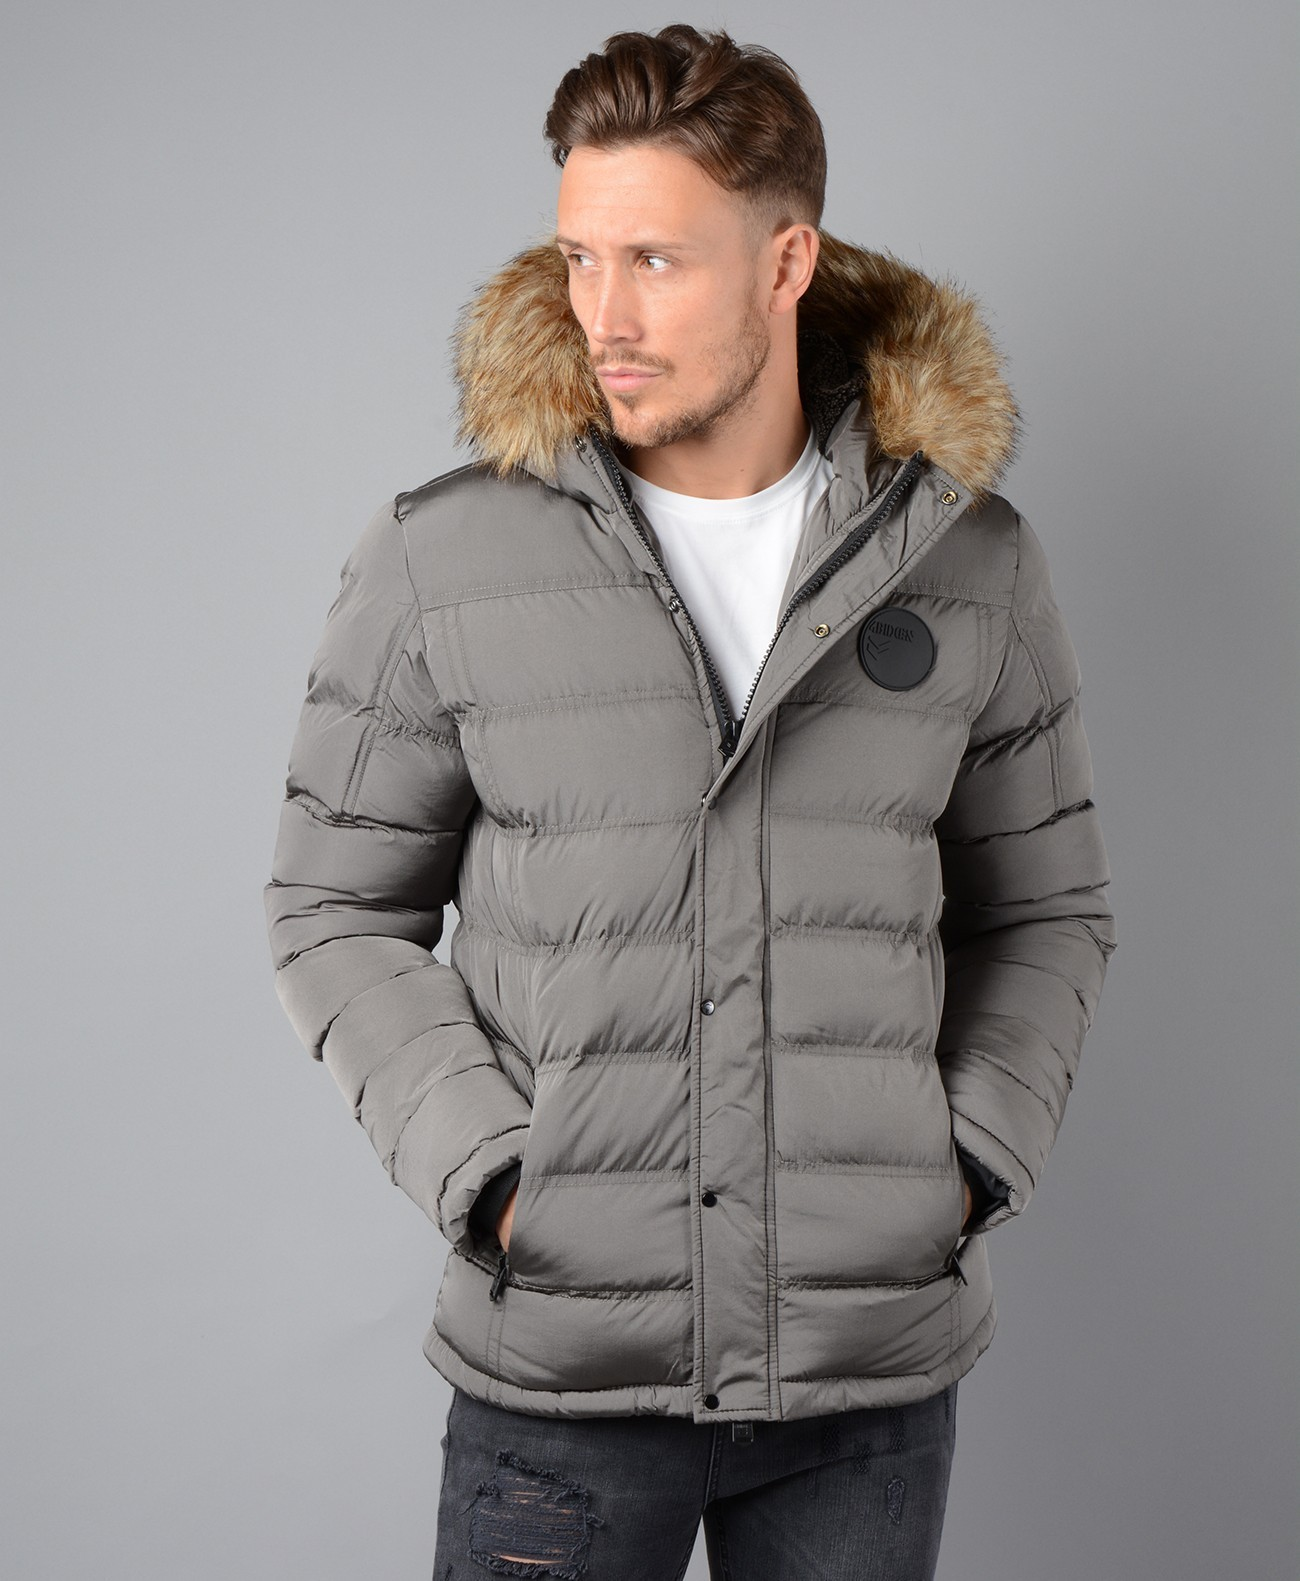 Storm Jacket in Grey